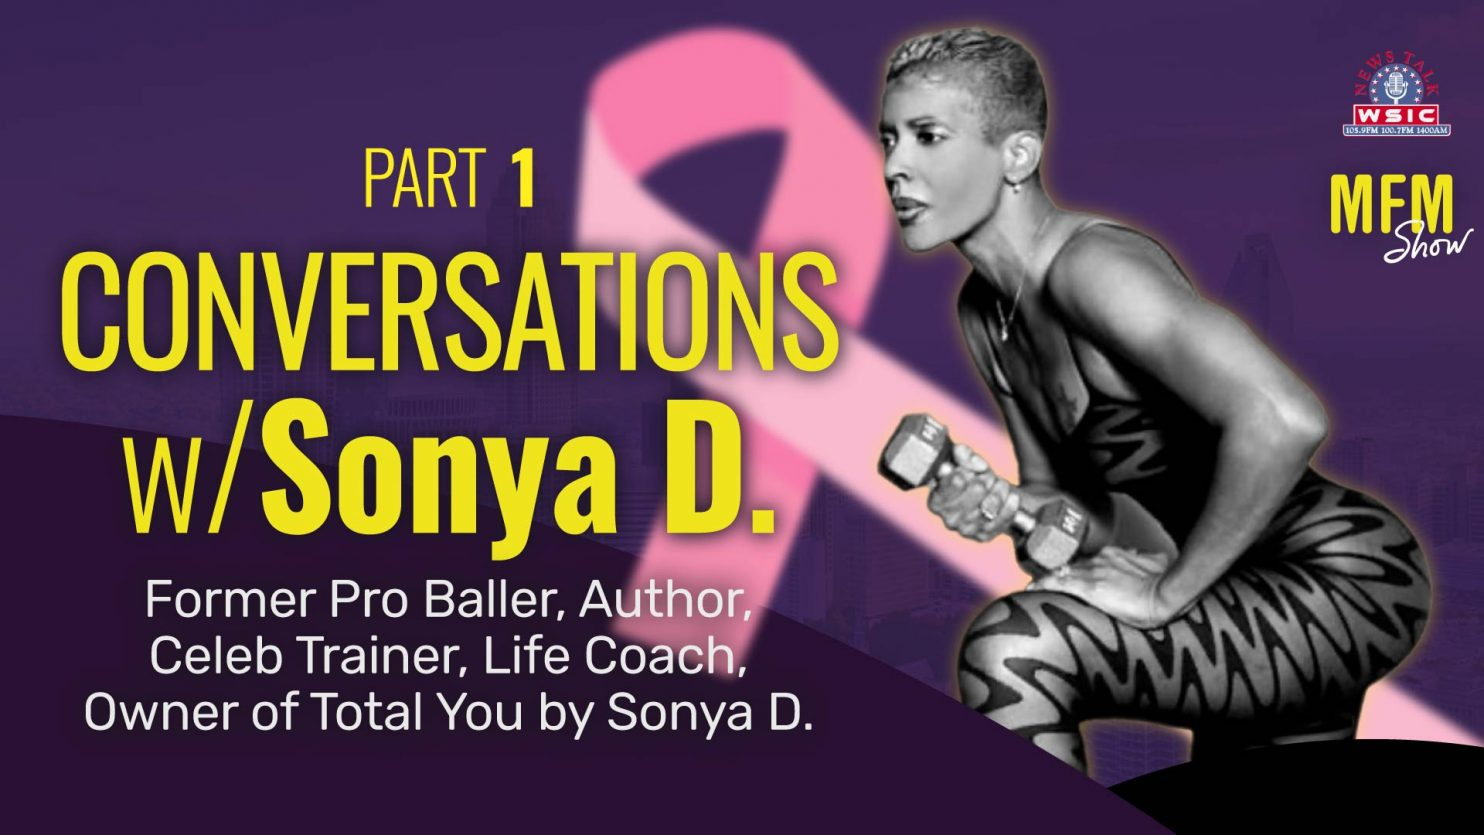 Conversations with Sonya D.